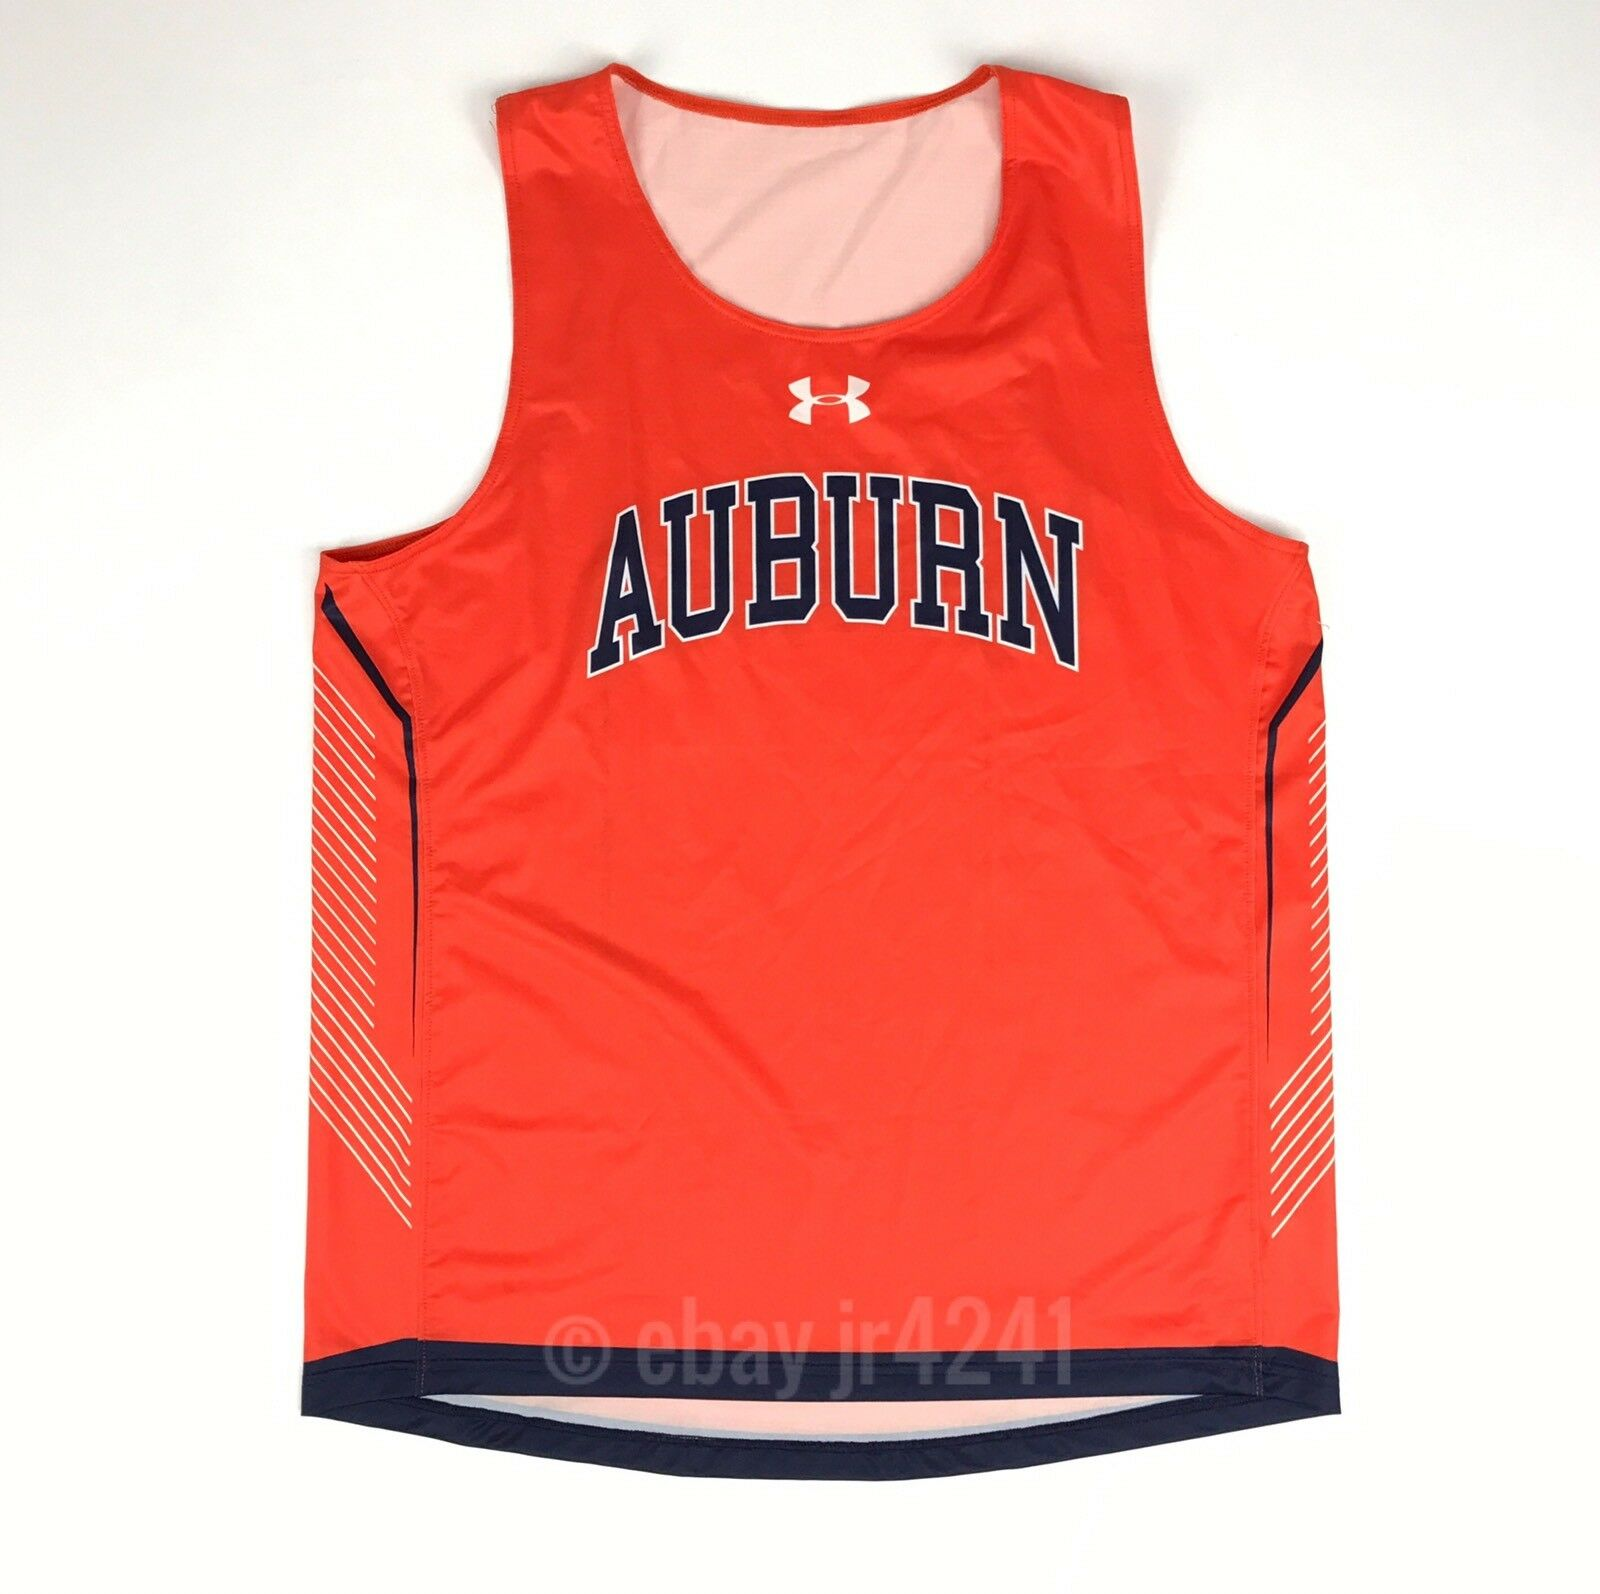 e900906dbd93 Details about Under Armour Auburn Tigers Armourfuse Running Singlet Orange  Tank Top Men s L